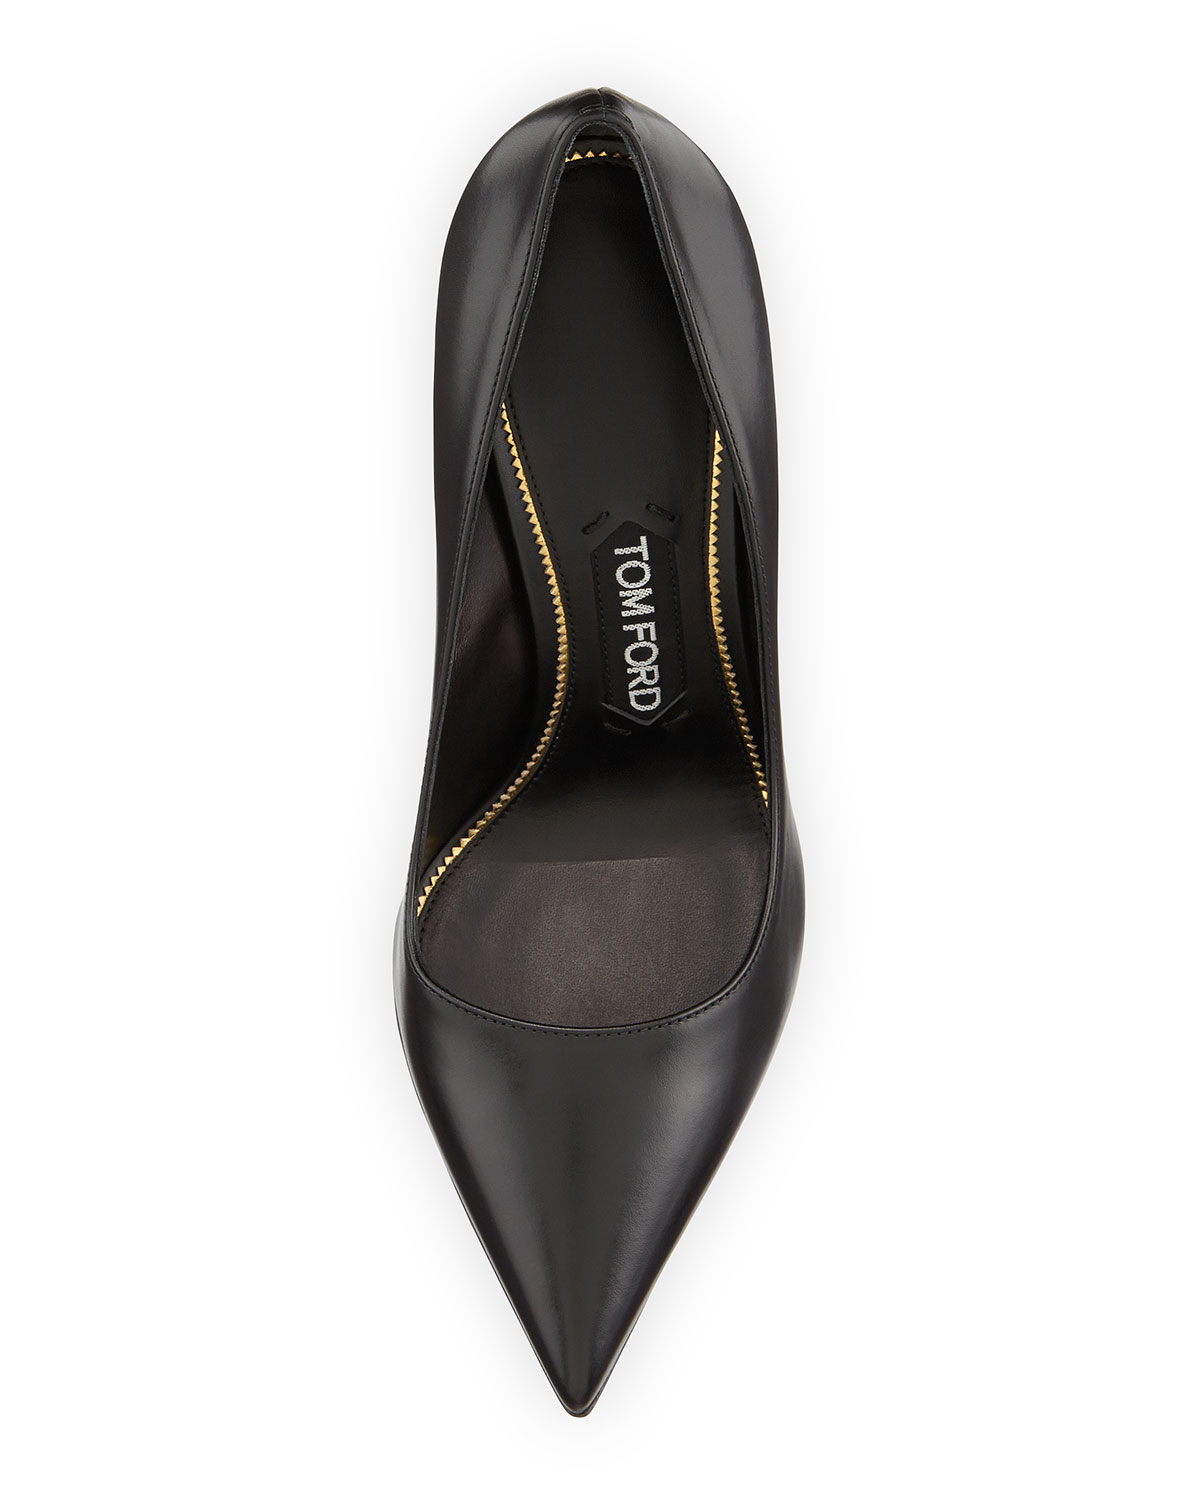 c4f4dab882 Tom Ford Golden Pin-Heeled Leather Pumps in Black - Lyst